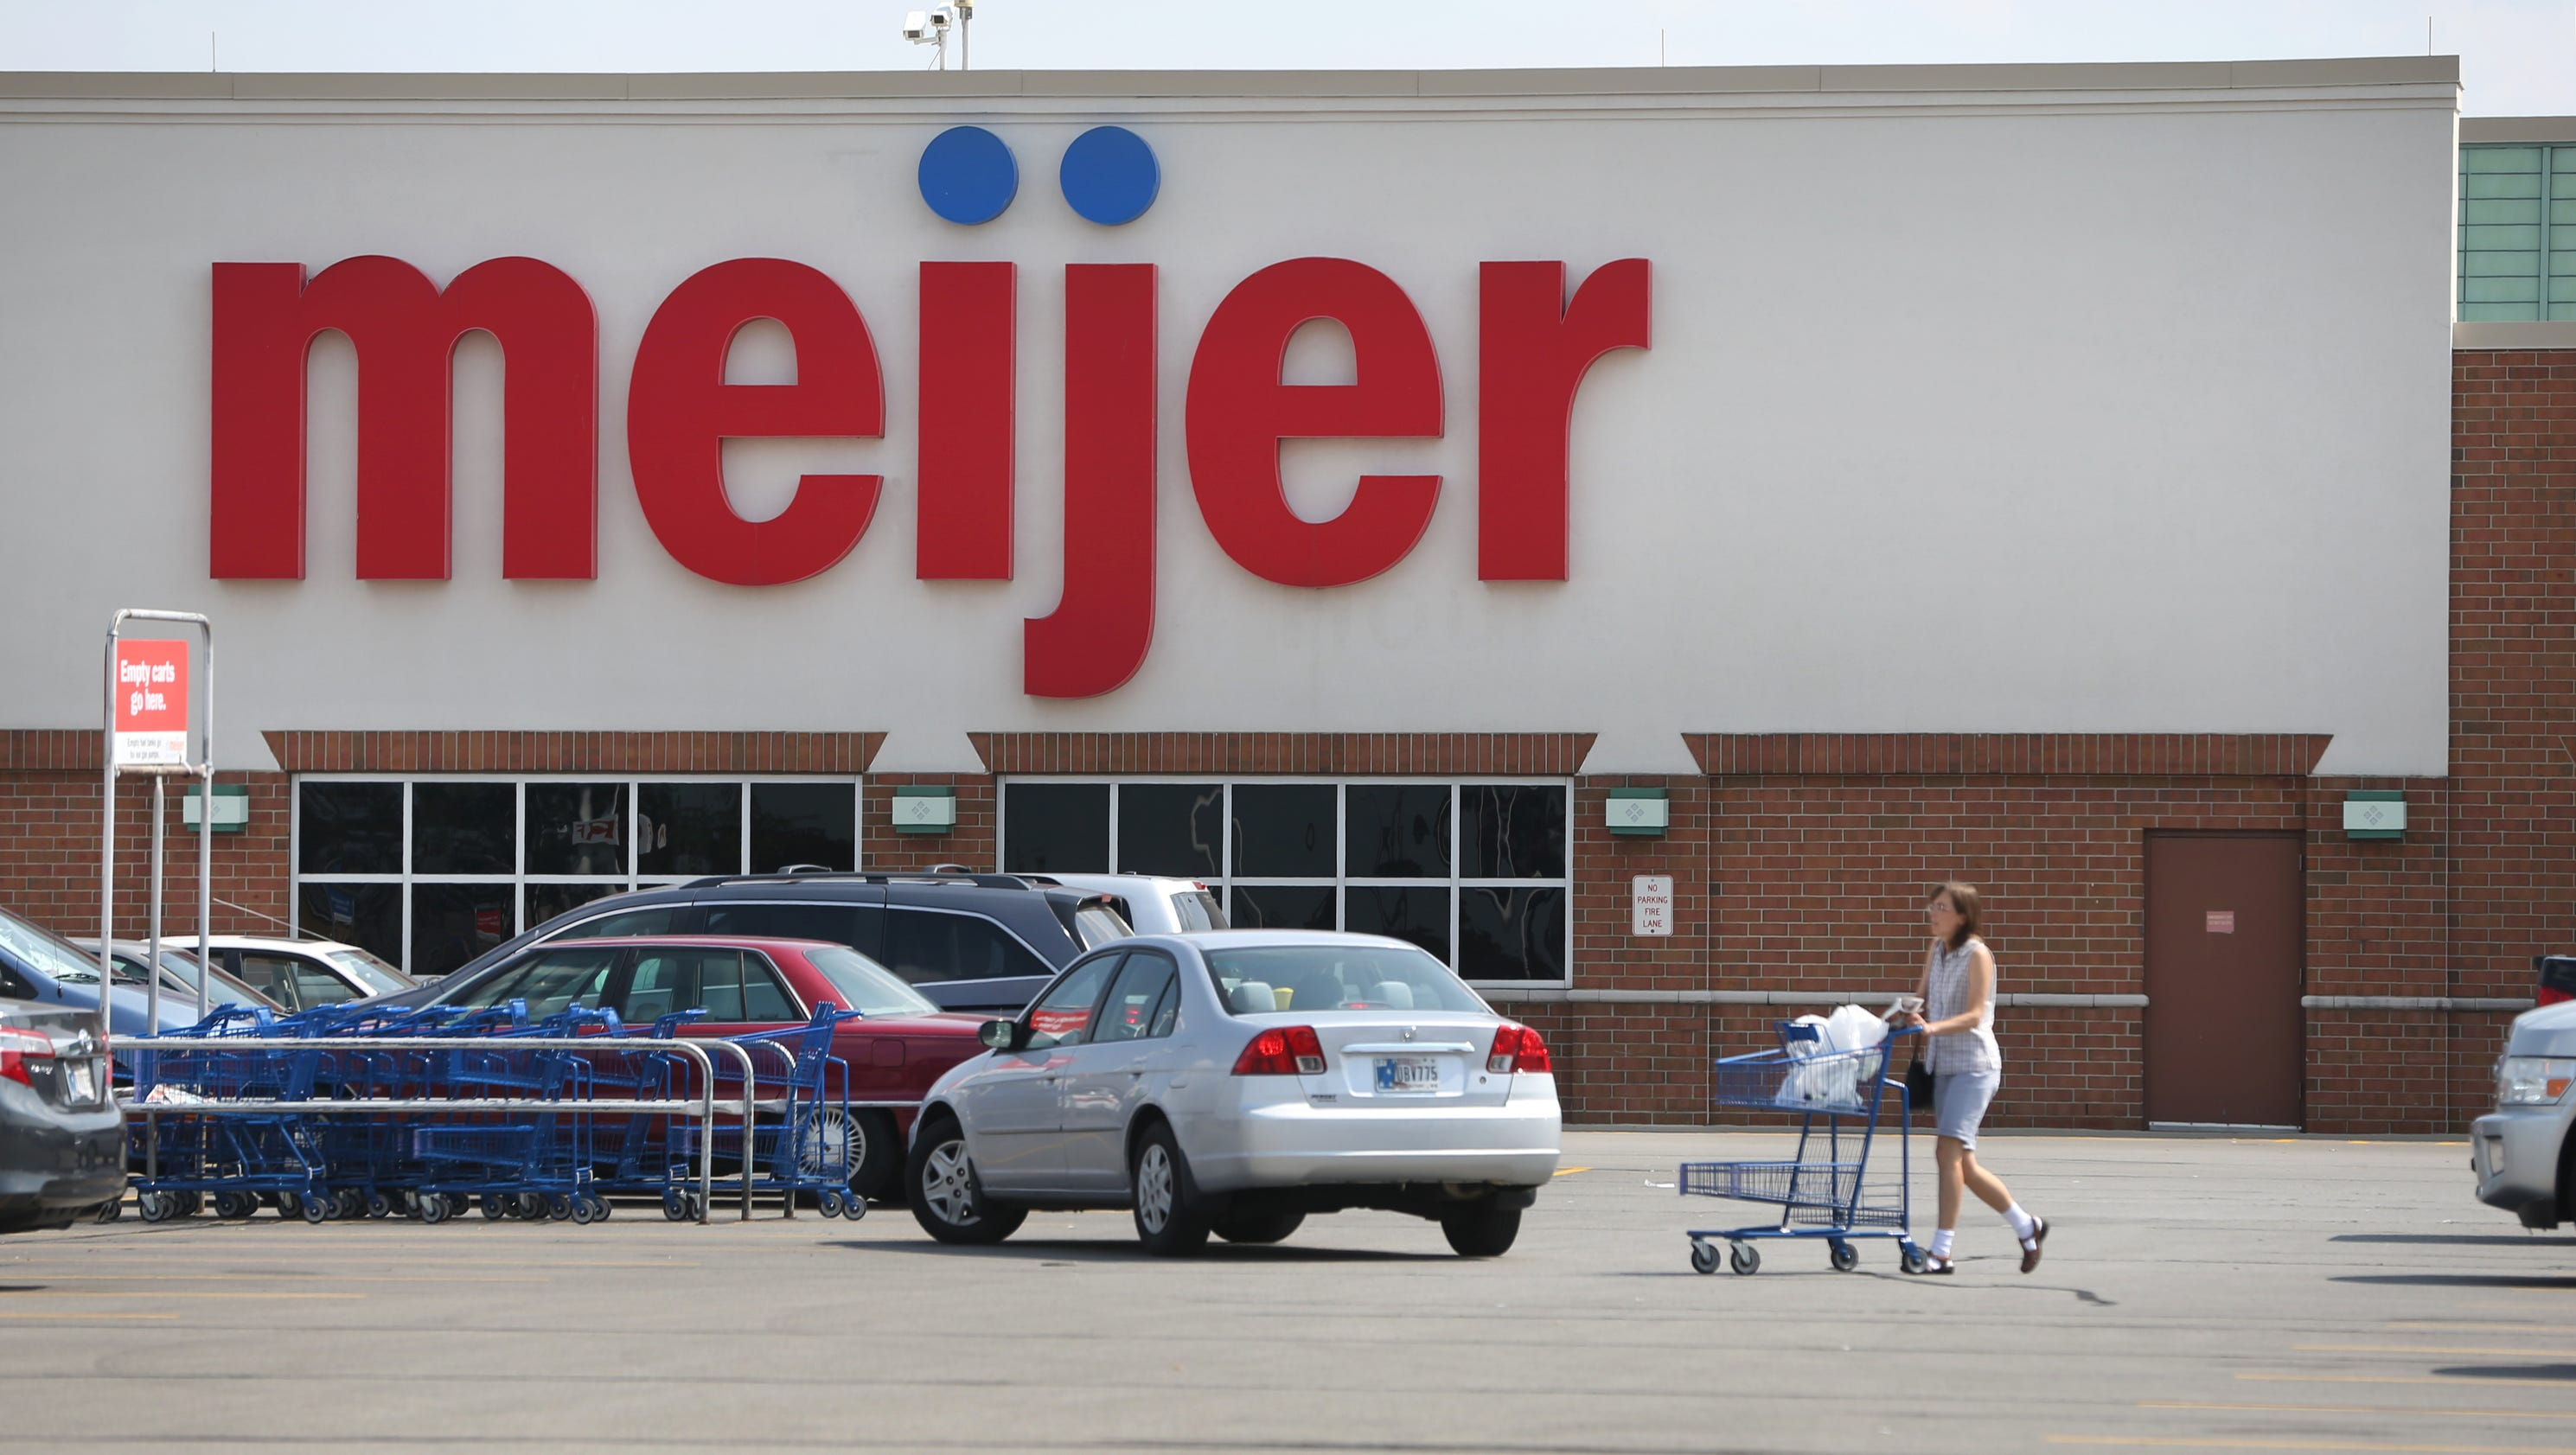 meijer - photo #18